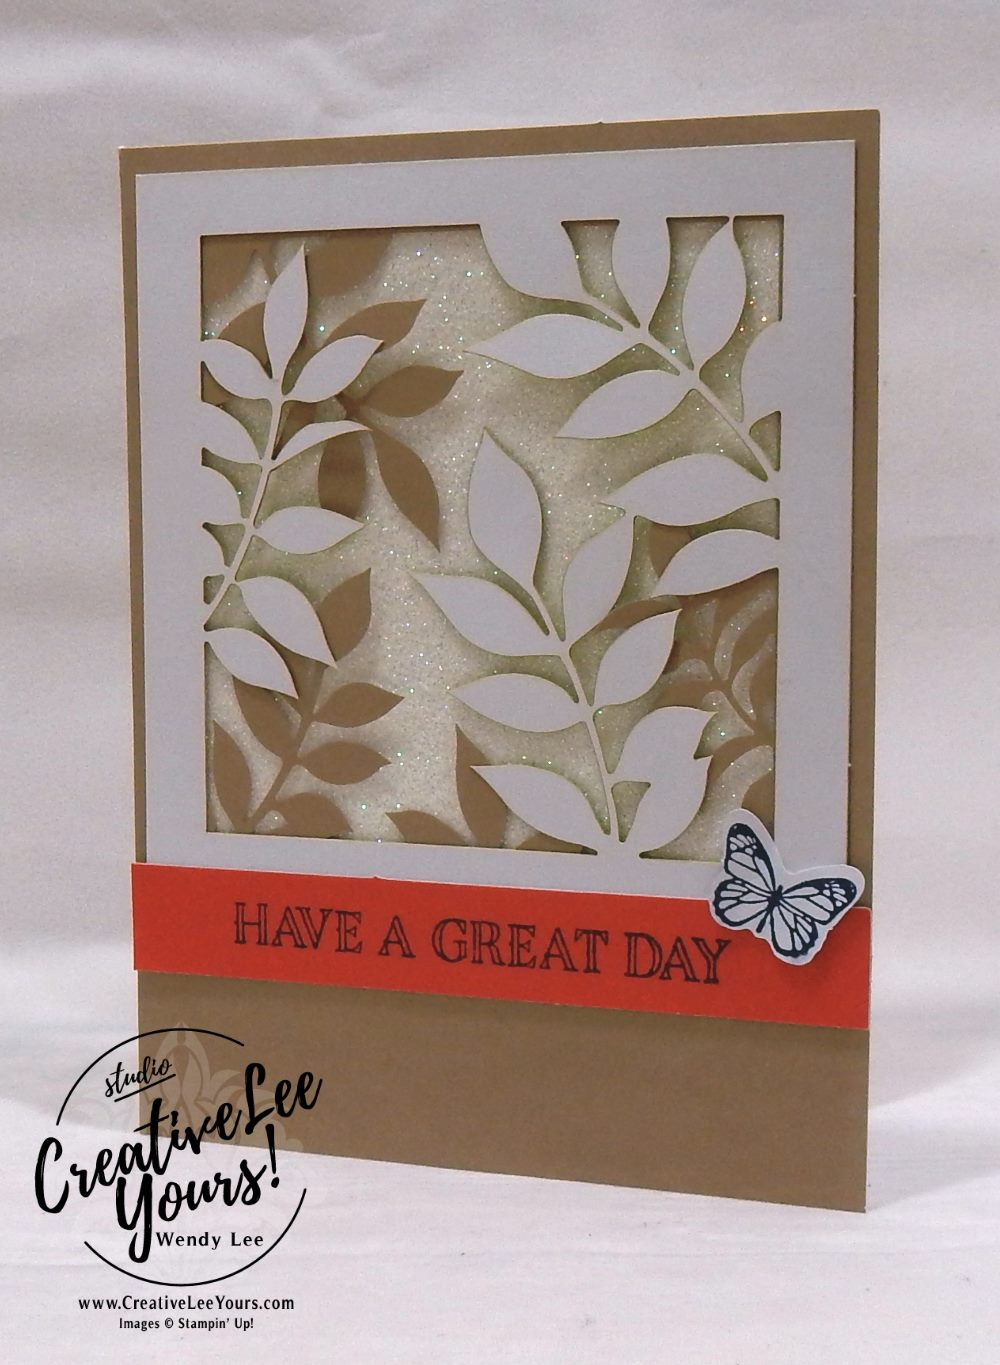 Have A Great Day by Wendy Lee,December 2017 Paper Pumpkin Flora and Flutter Kit,stampin up, handmade cards, rubber stamps, stamping, kit, subscription, floral cards, congratulations, SAB,sale-a-bration,#creativeleeyours, creatively yours